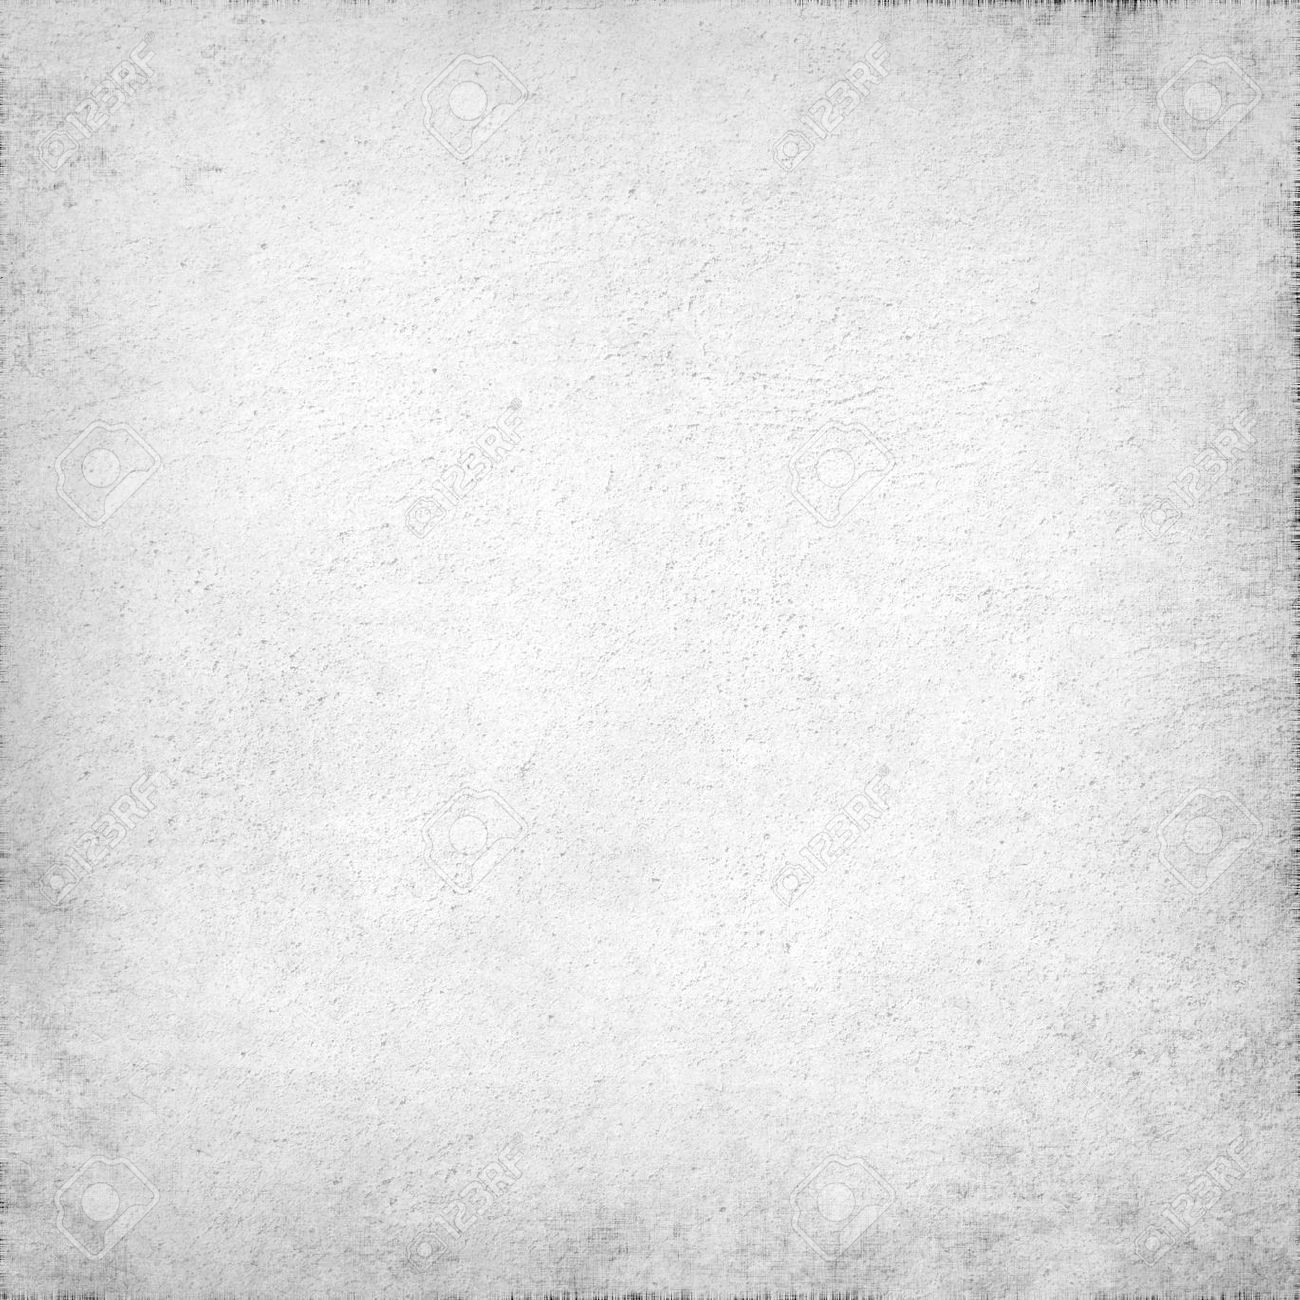 Black And White Newspaper Background Writings And Essays Corner Paper Texture White Paper Texture Newspaper Background